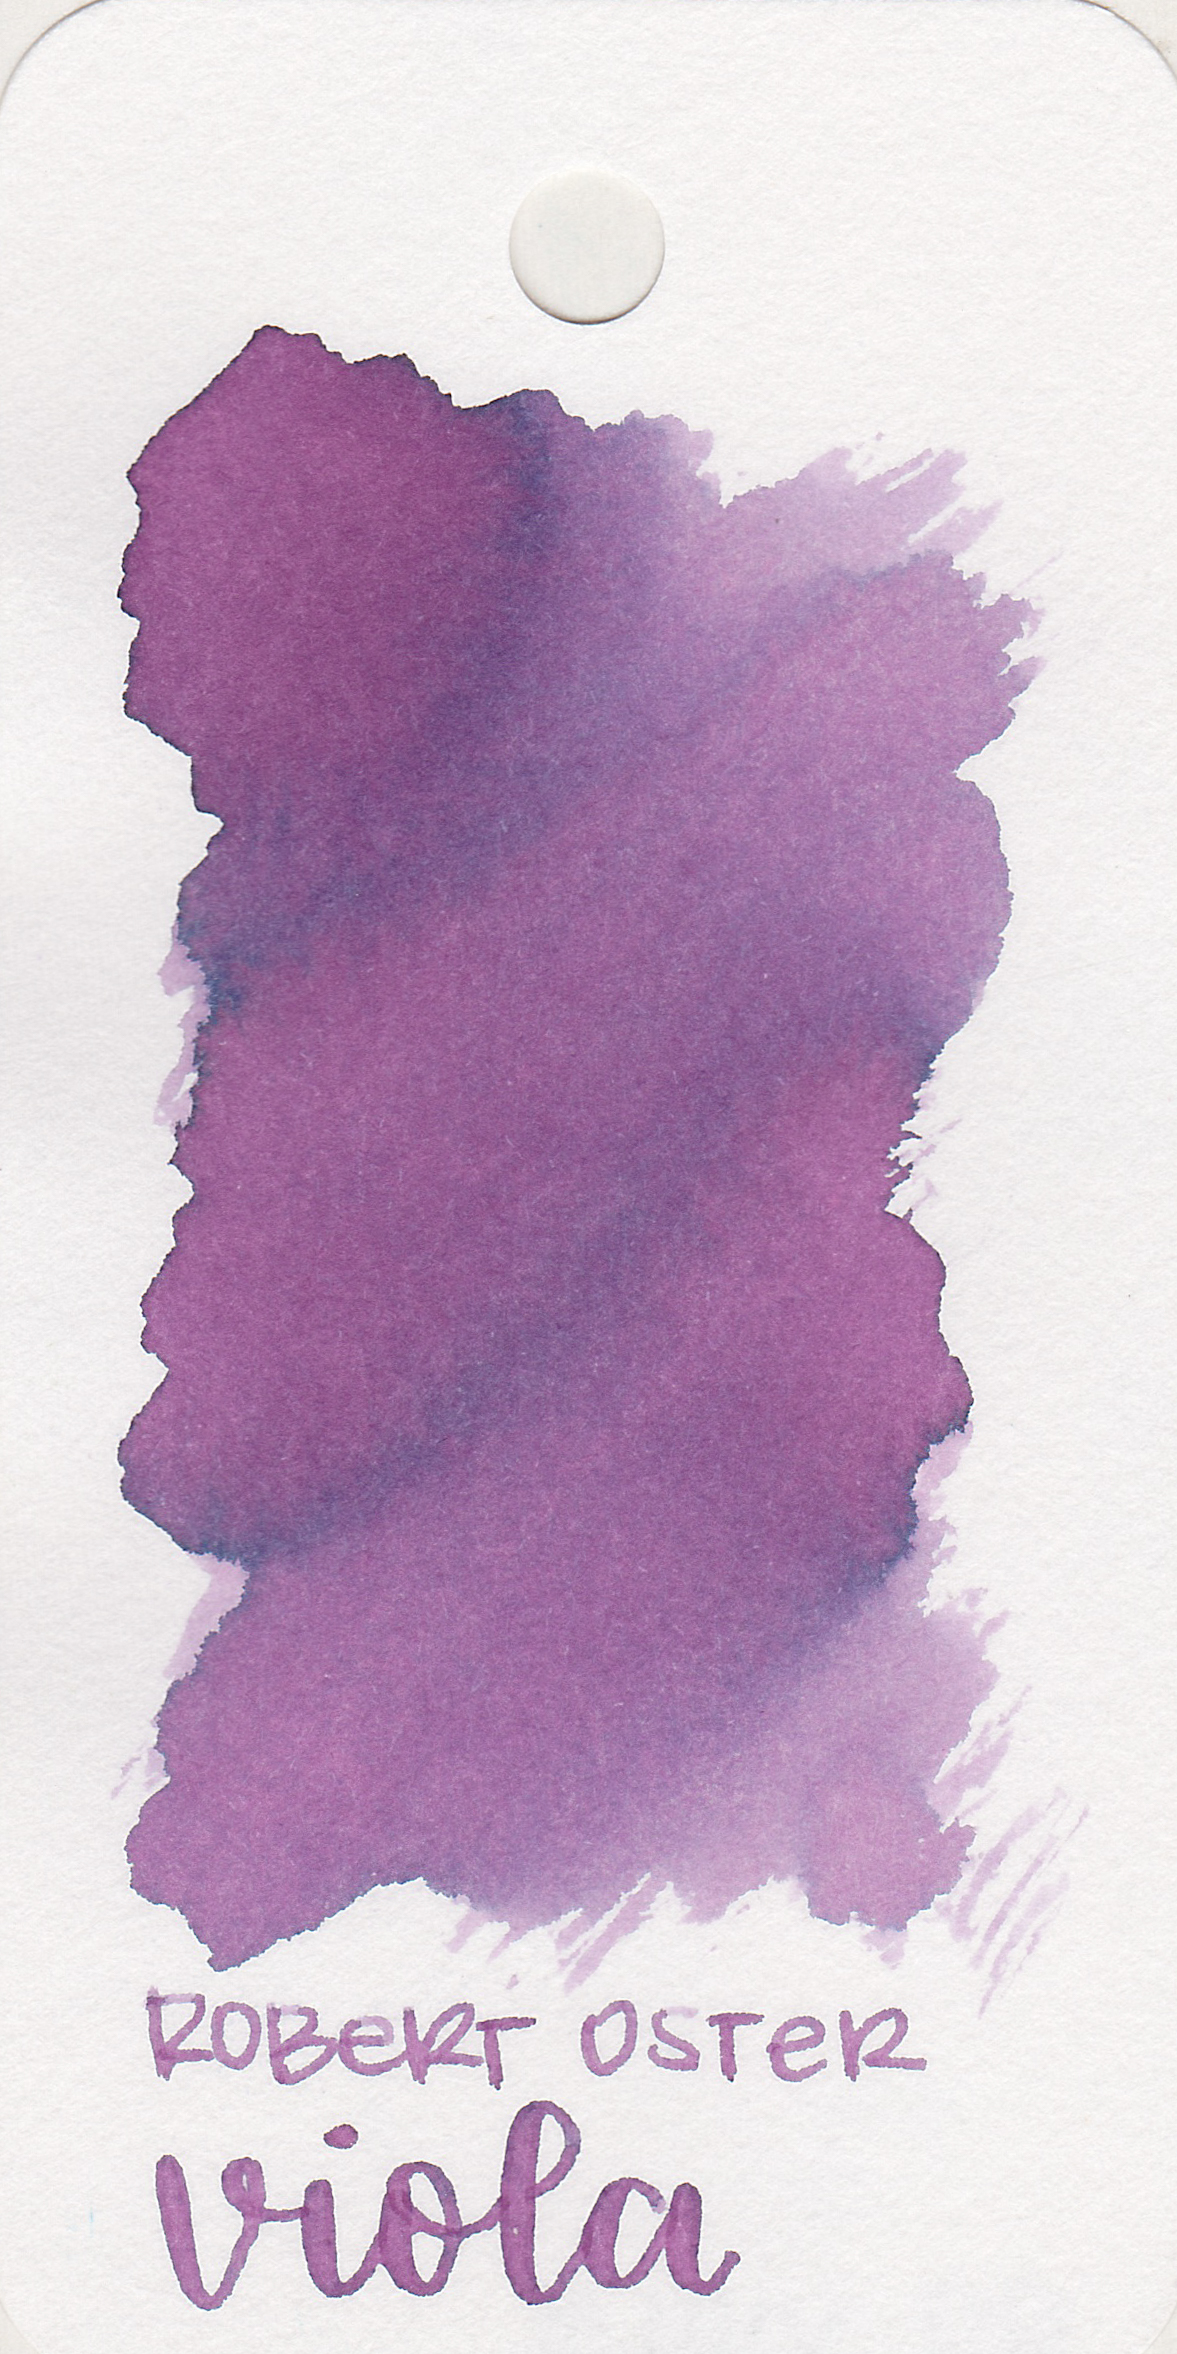 The color: - Viola is a light, spring purple.